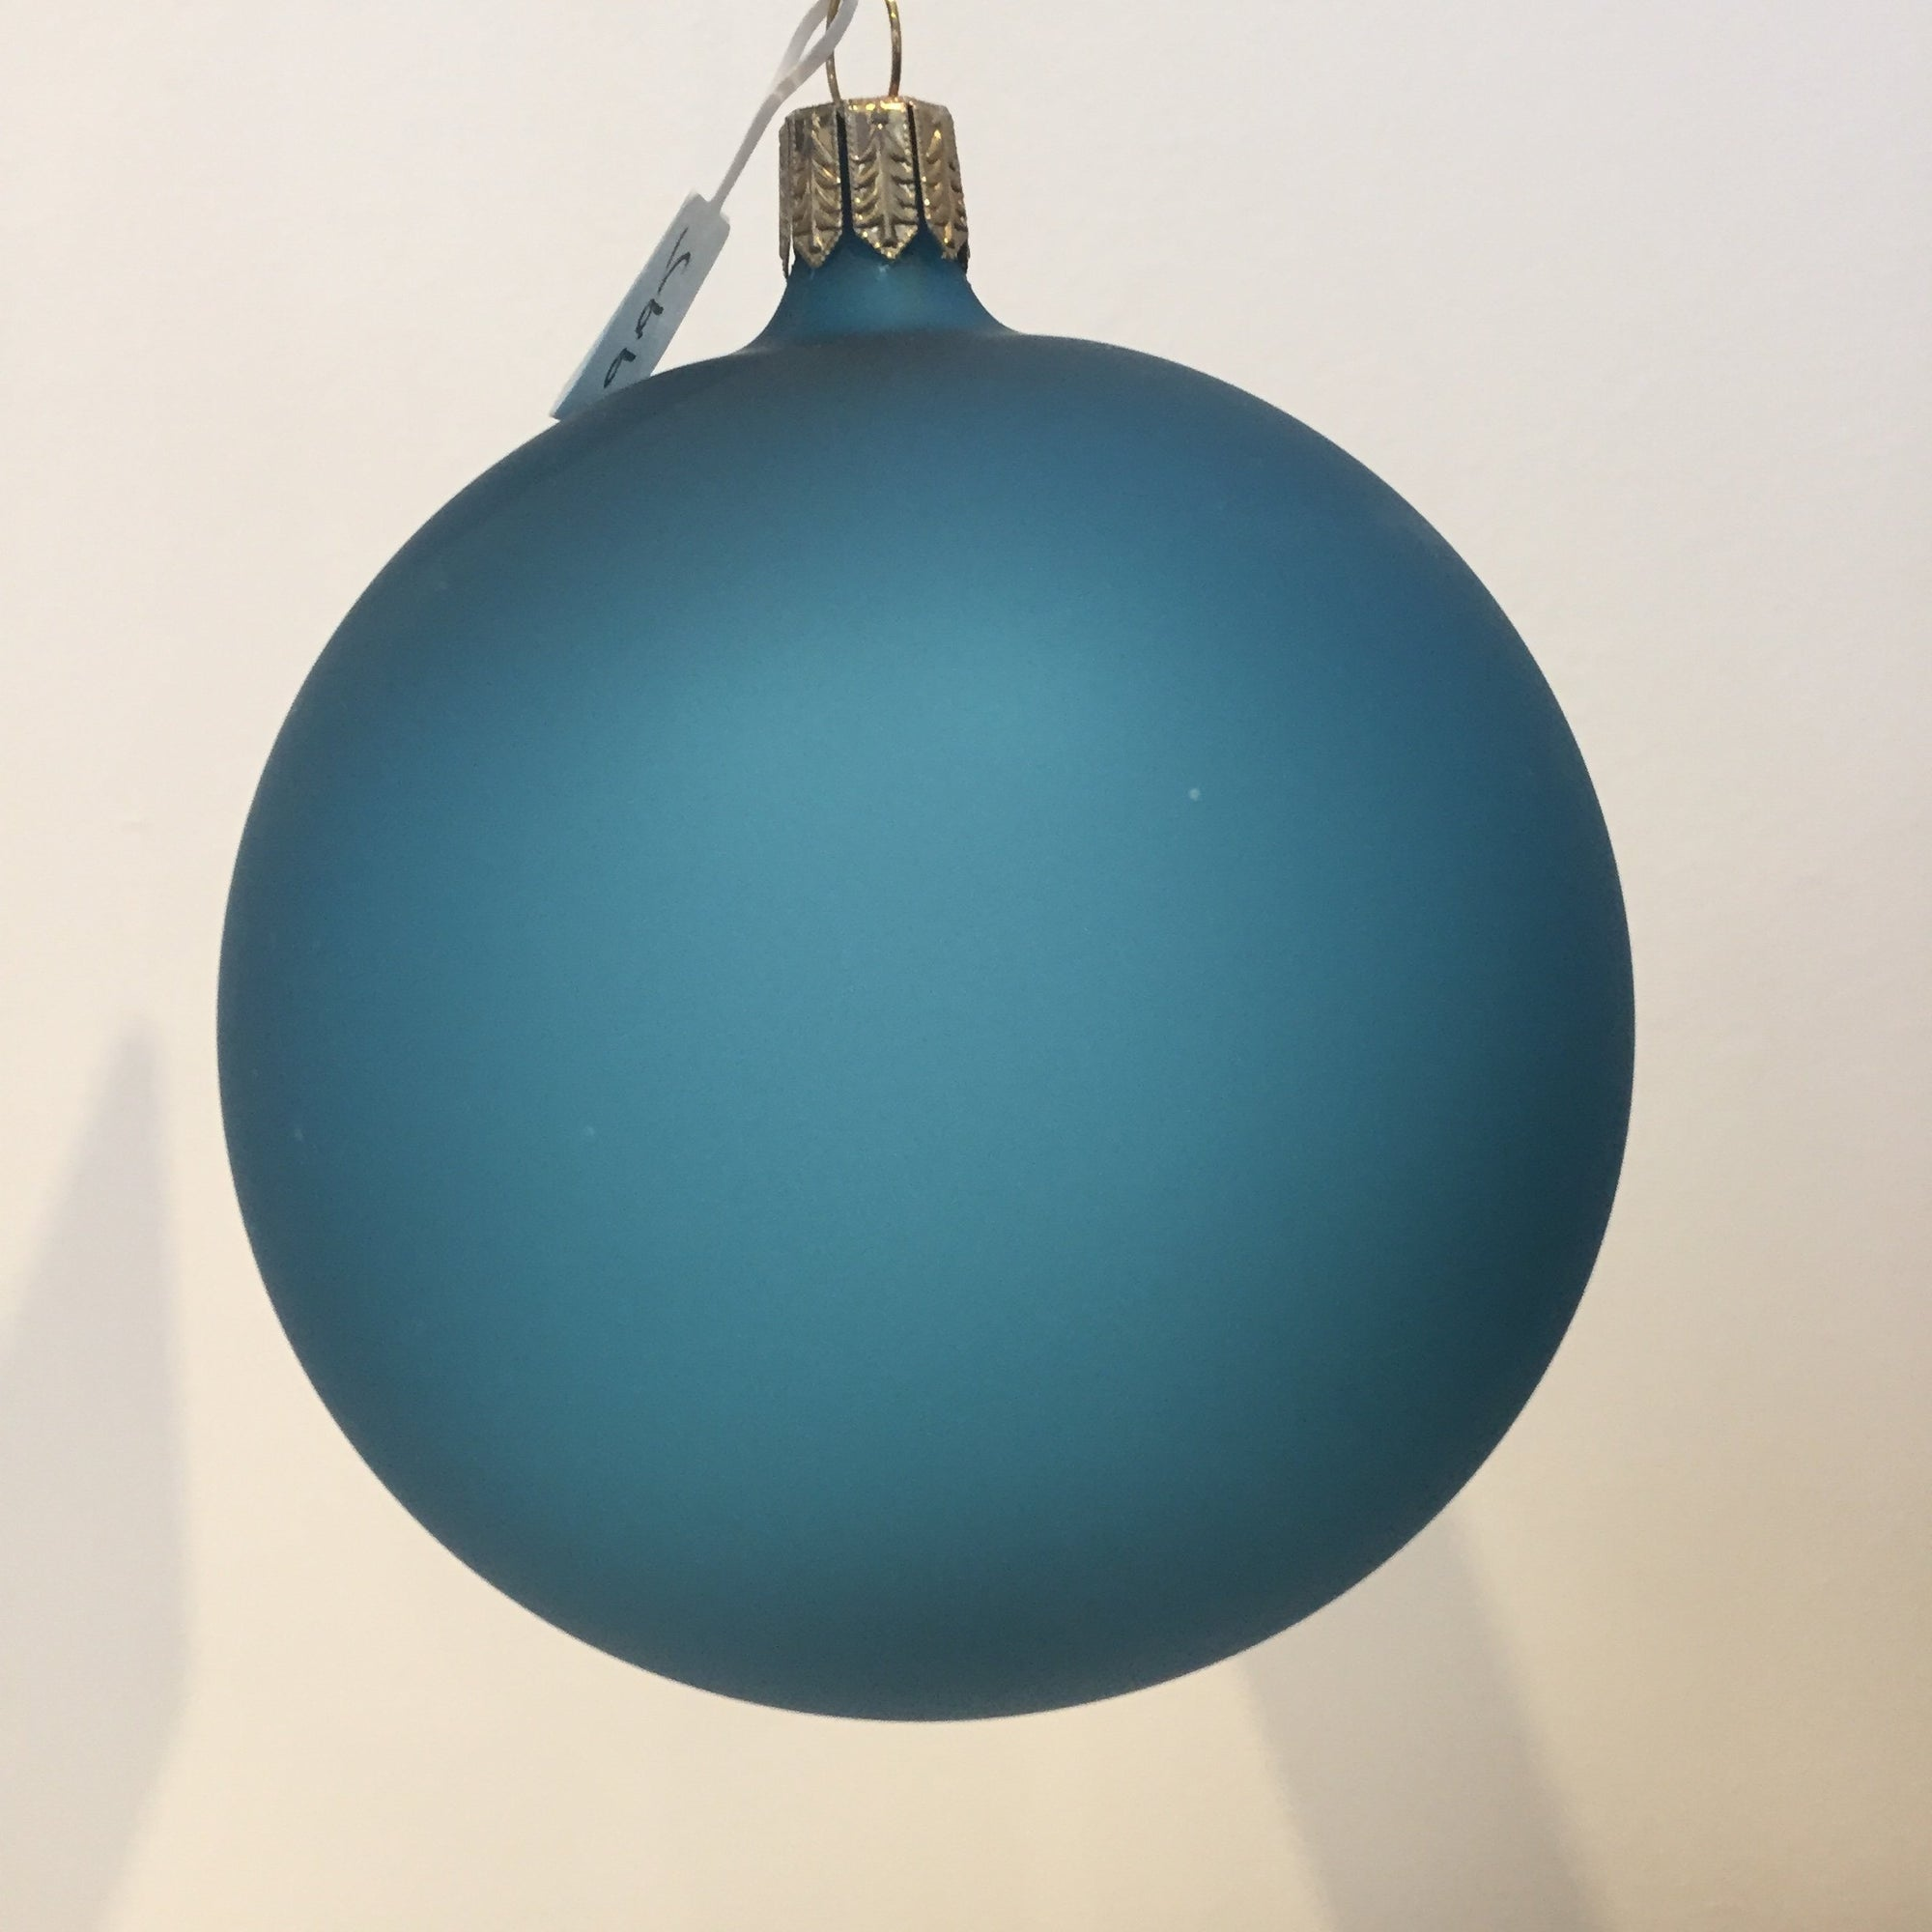 Teal Matte Bauble, 9cm. - My Christmas